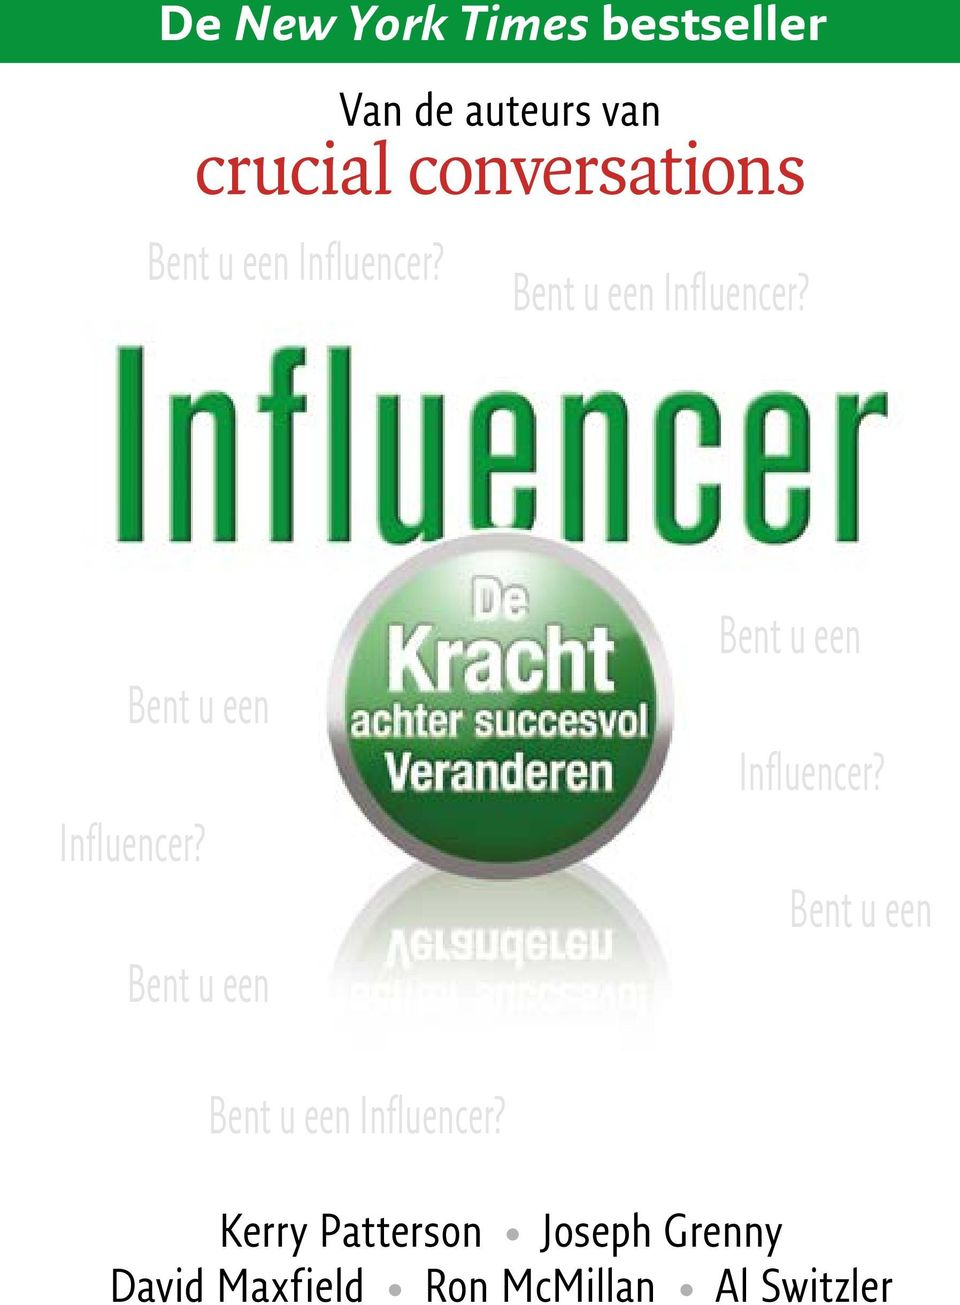 Bent u een Influencer? Bent u een Influencer?